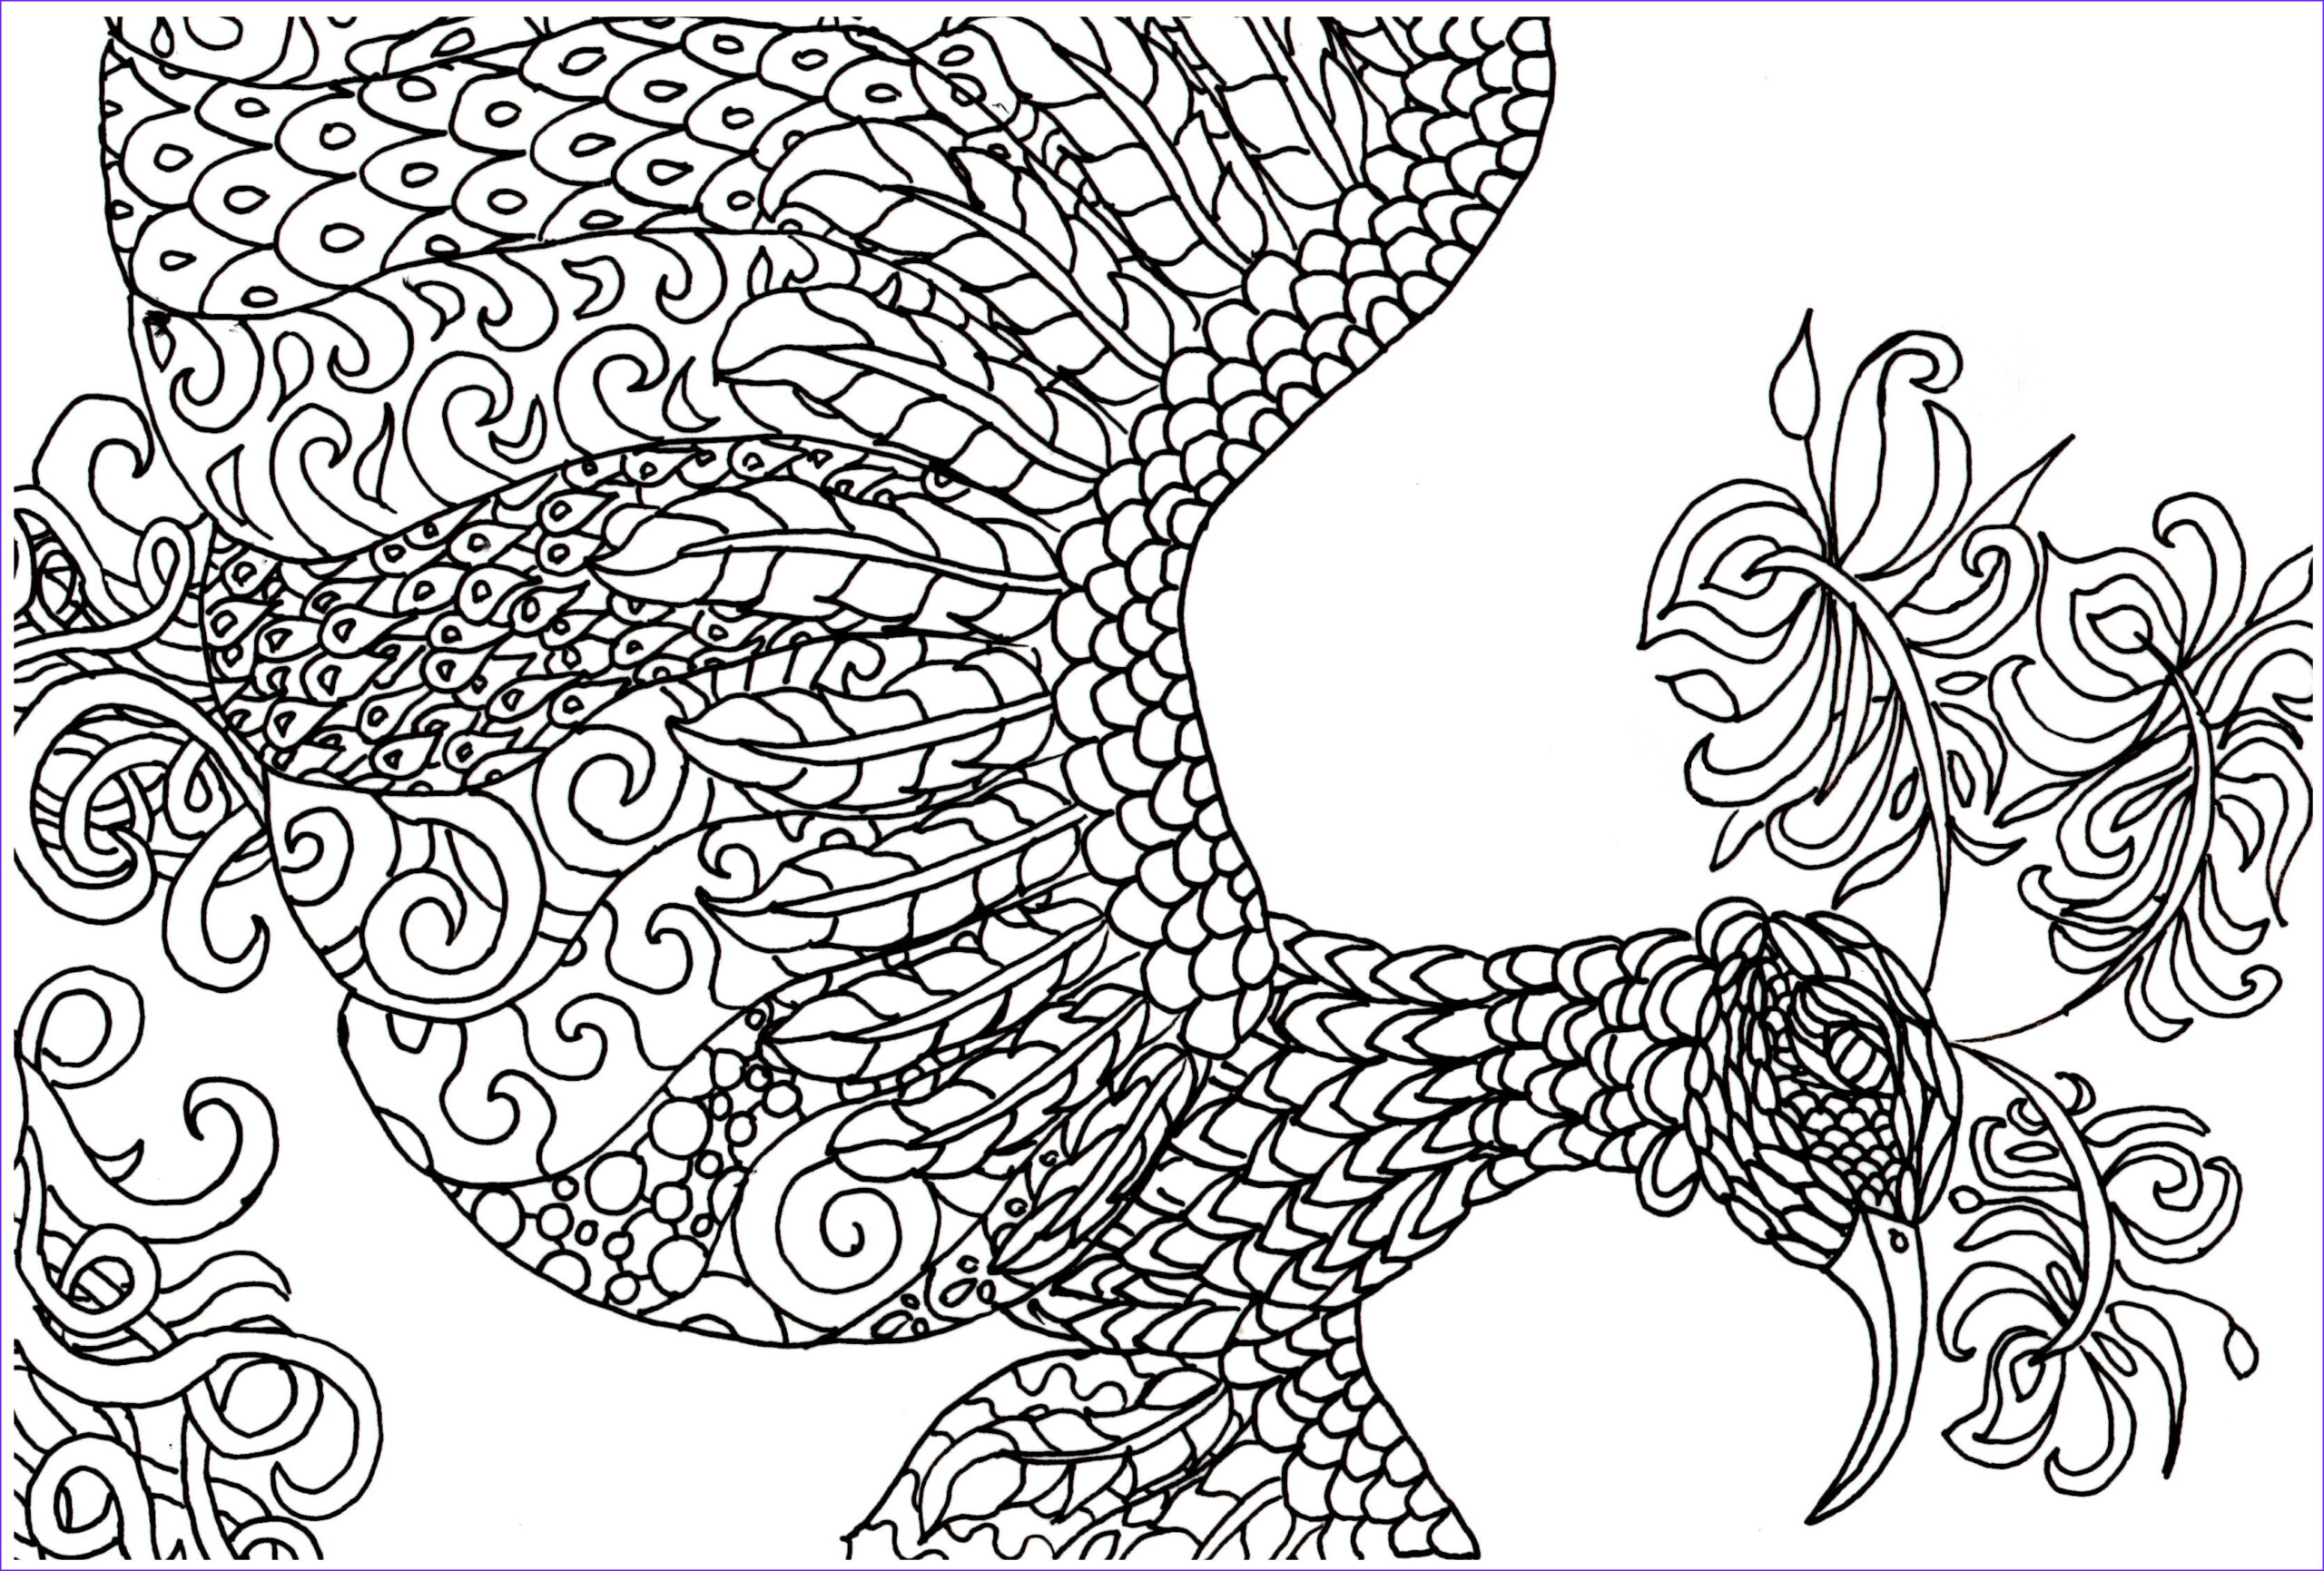 Detailed Coloring Books Luxury Image Detailed Coloring Pages Coloringsuite